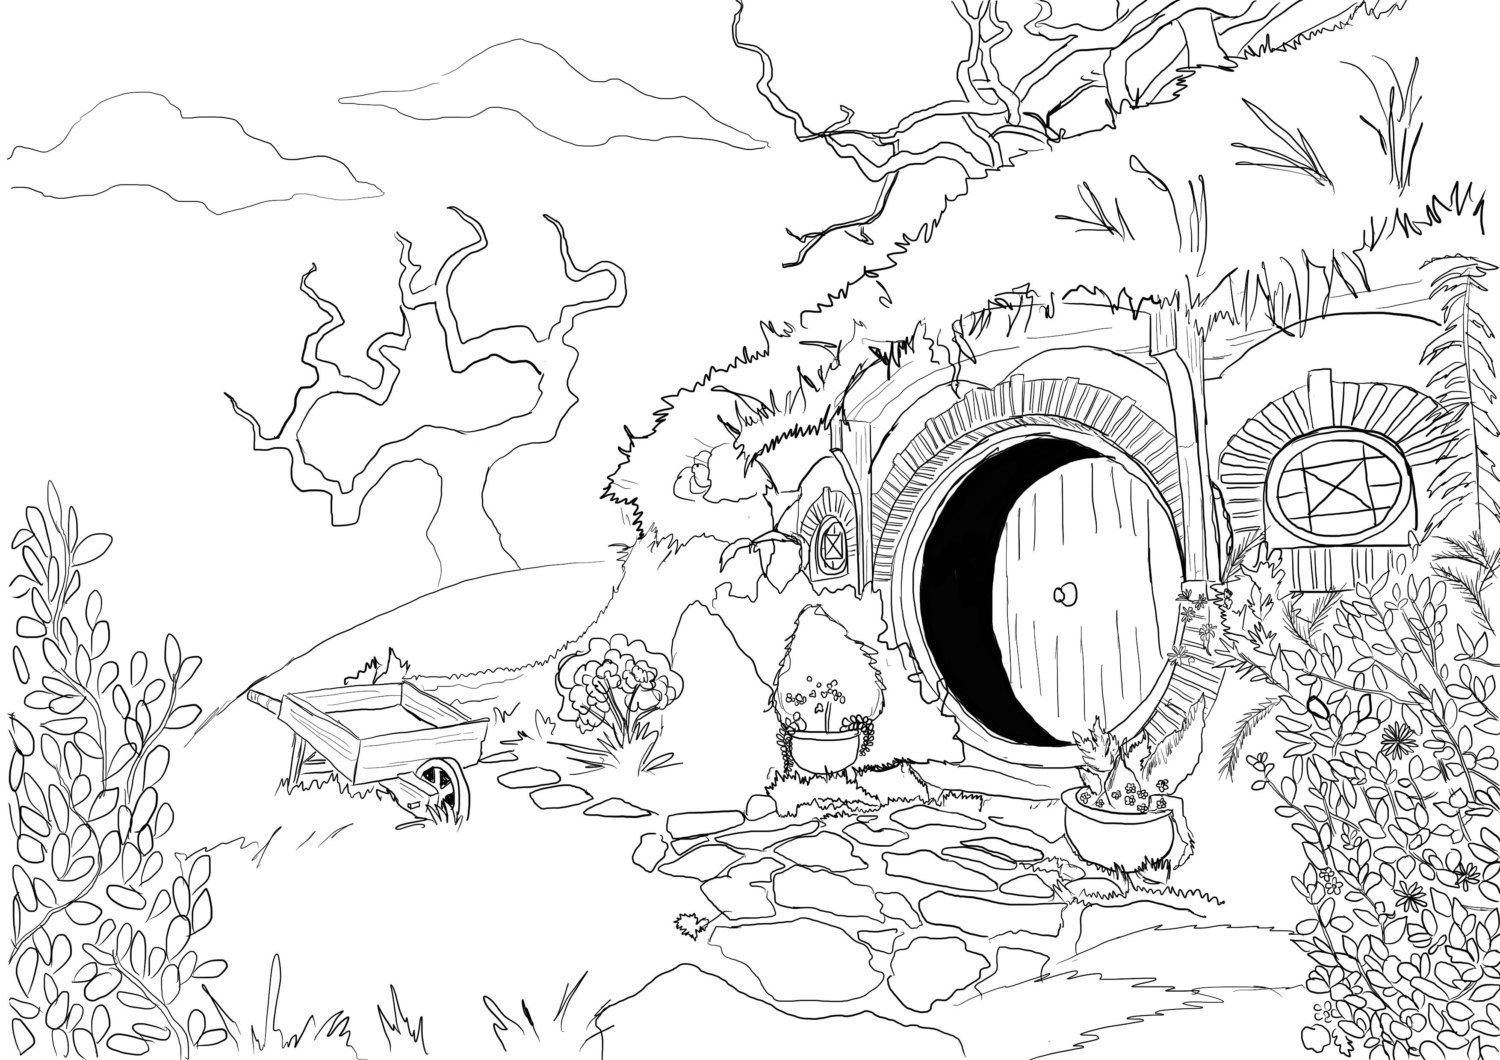 hobbit coloring pages hobbit coloring pages coloring pages to download and print hobbit coloring pages 1 1